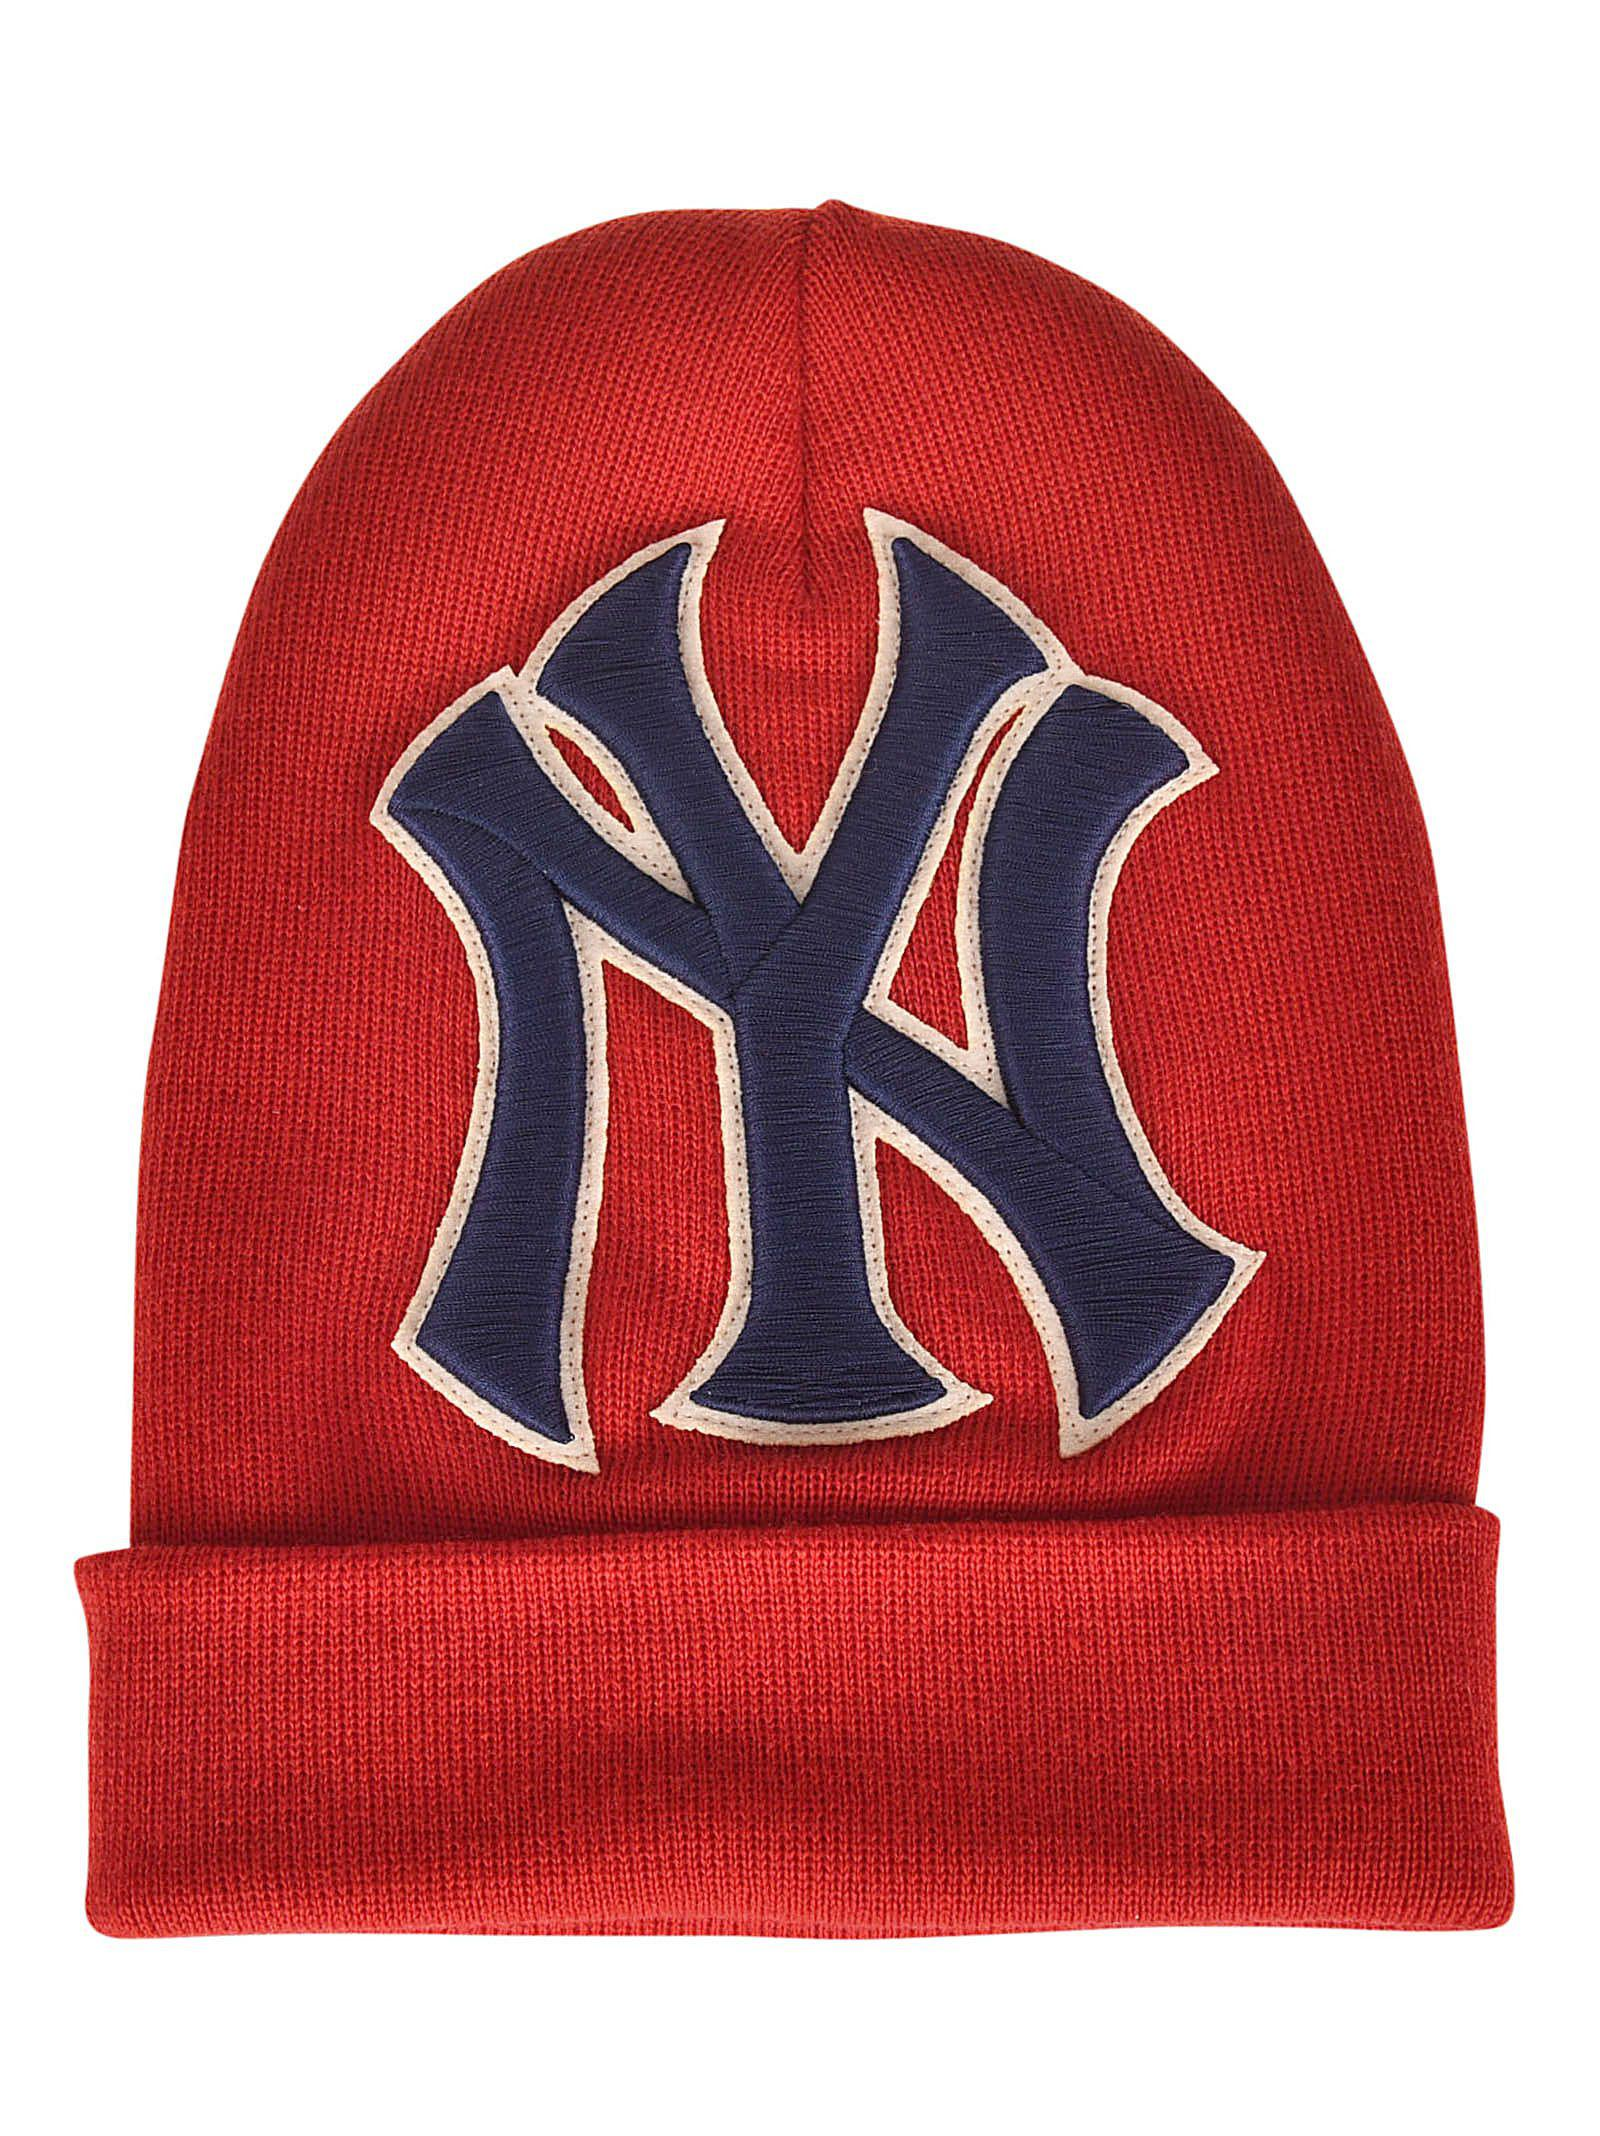 ec6aa0ddc4e Gucci Men s New York Yankees Mlb Patch Beanie Hat In Red